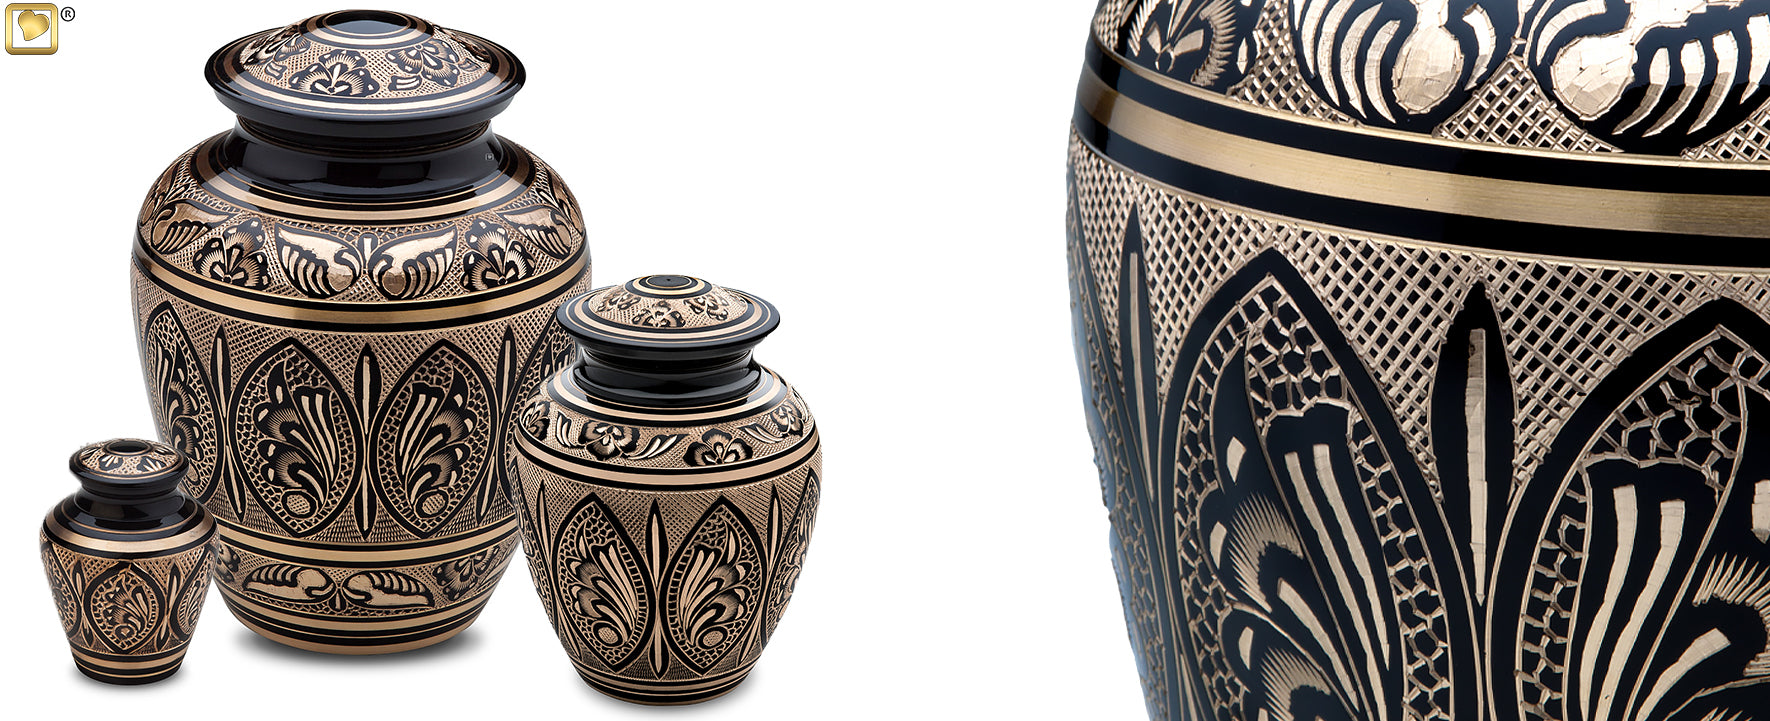 Cremation Urns for Ashes